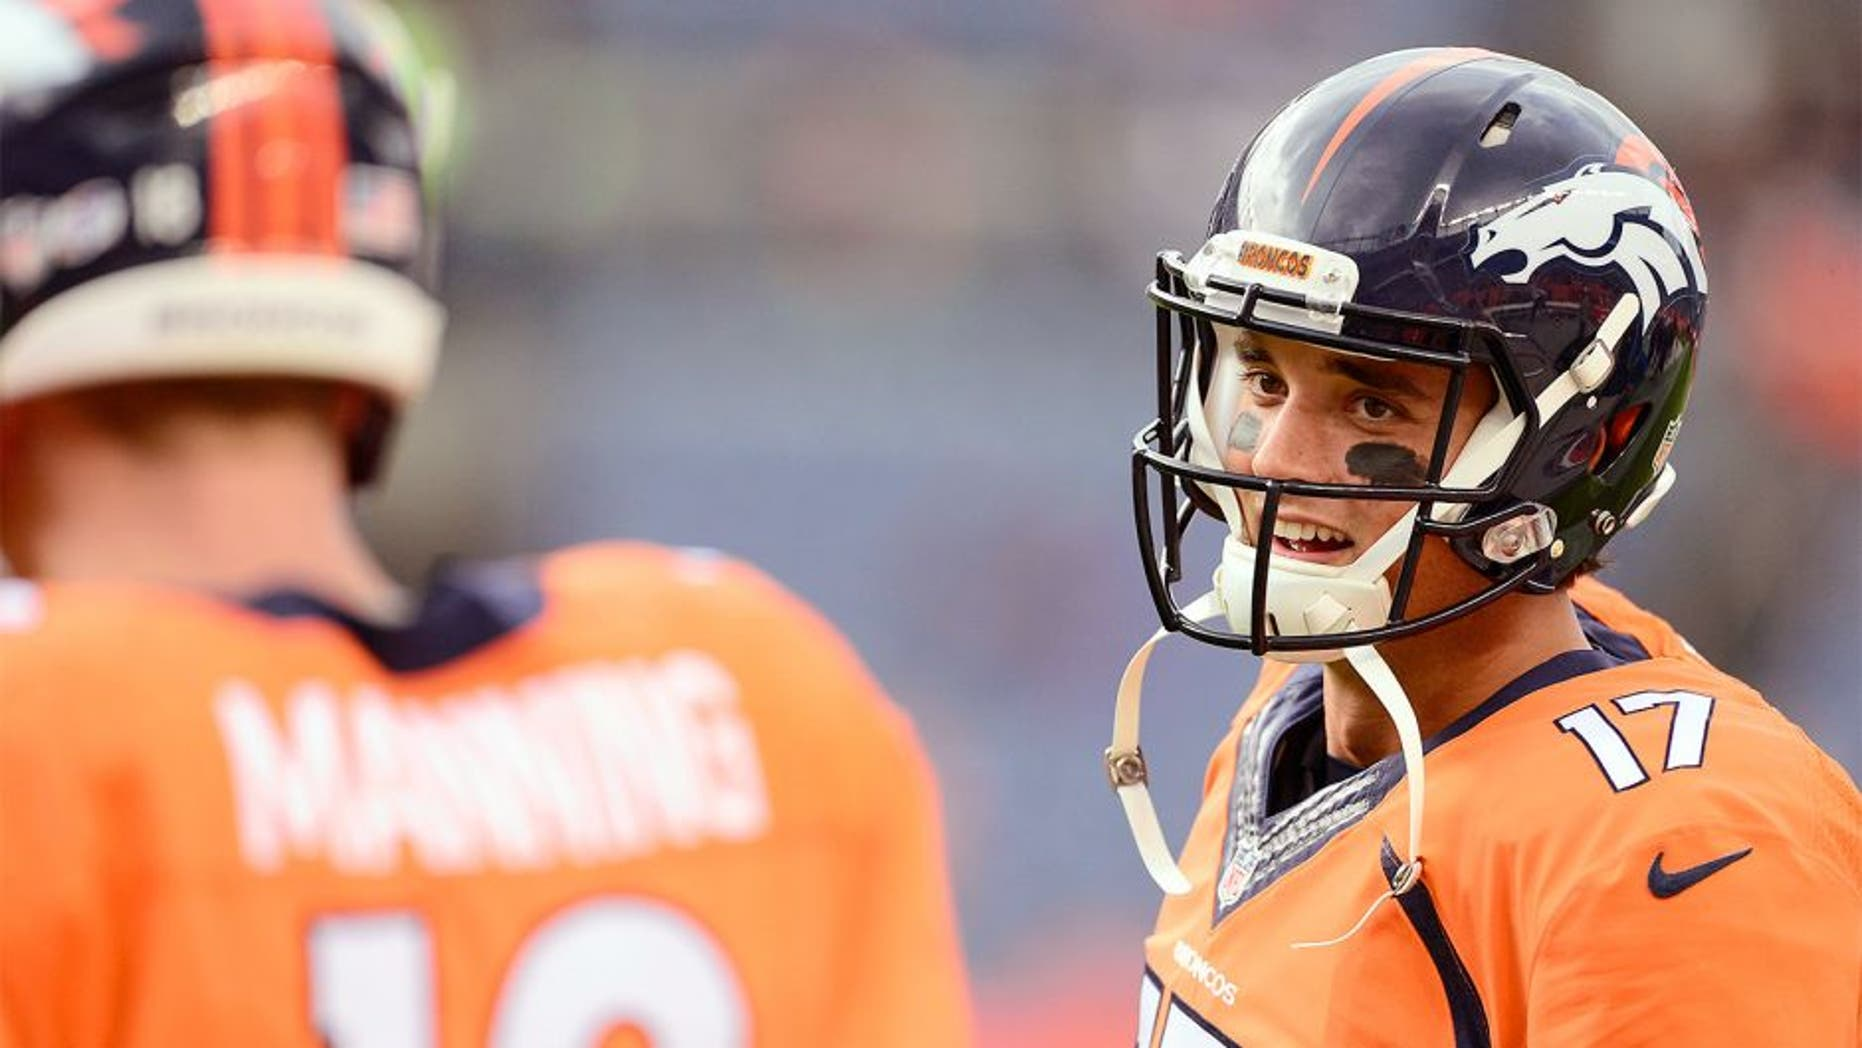 Sep 3, 2015; Denver, CO, USA; Denver Broncos quarterback Brock Osweiler (17) talks to quarterback Peyton Manning (18) before the preseason game against the Arizona Cardinals at Sports Authority Field at Mile High. Mandatory Credit: Ron Chenoy-USA TODAY Sports